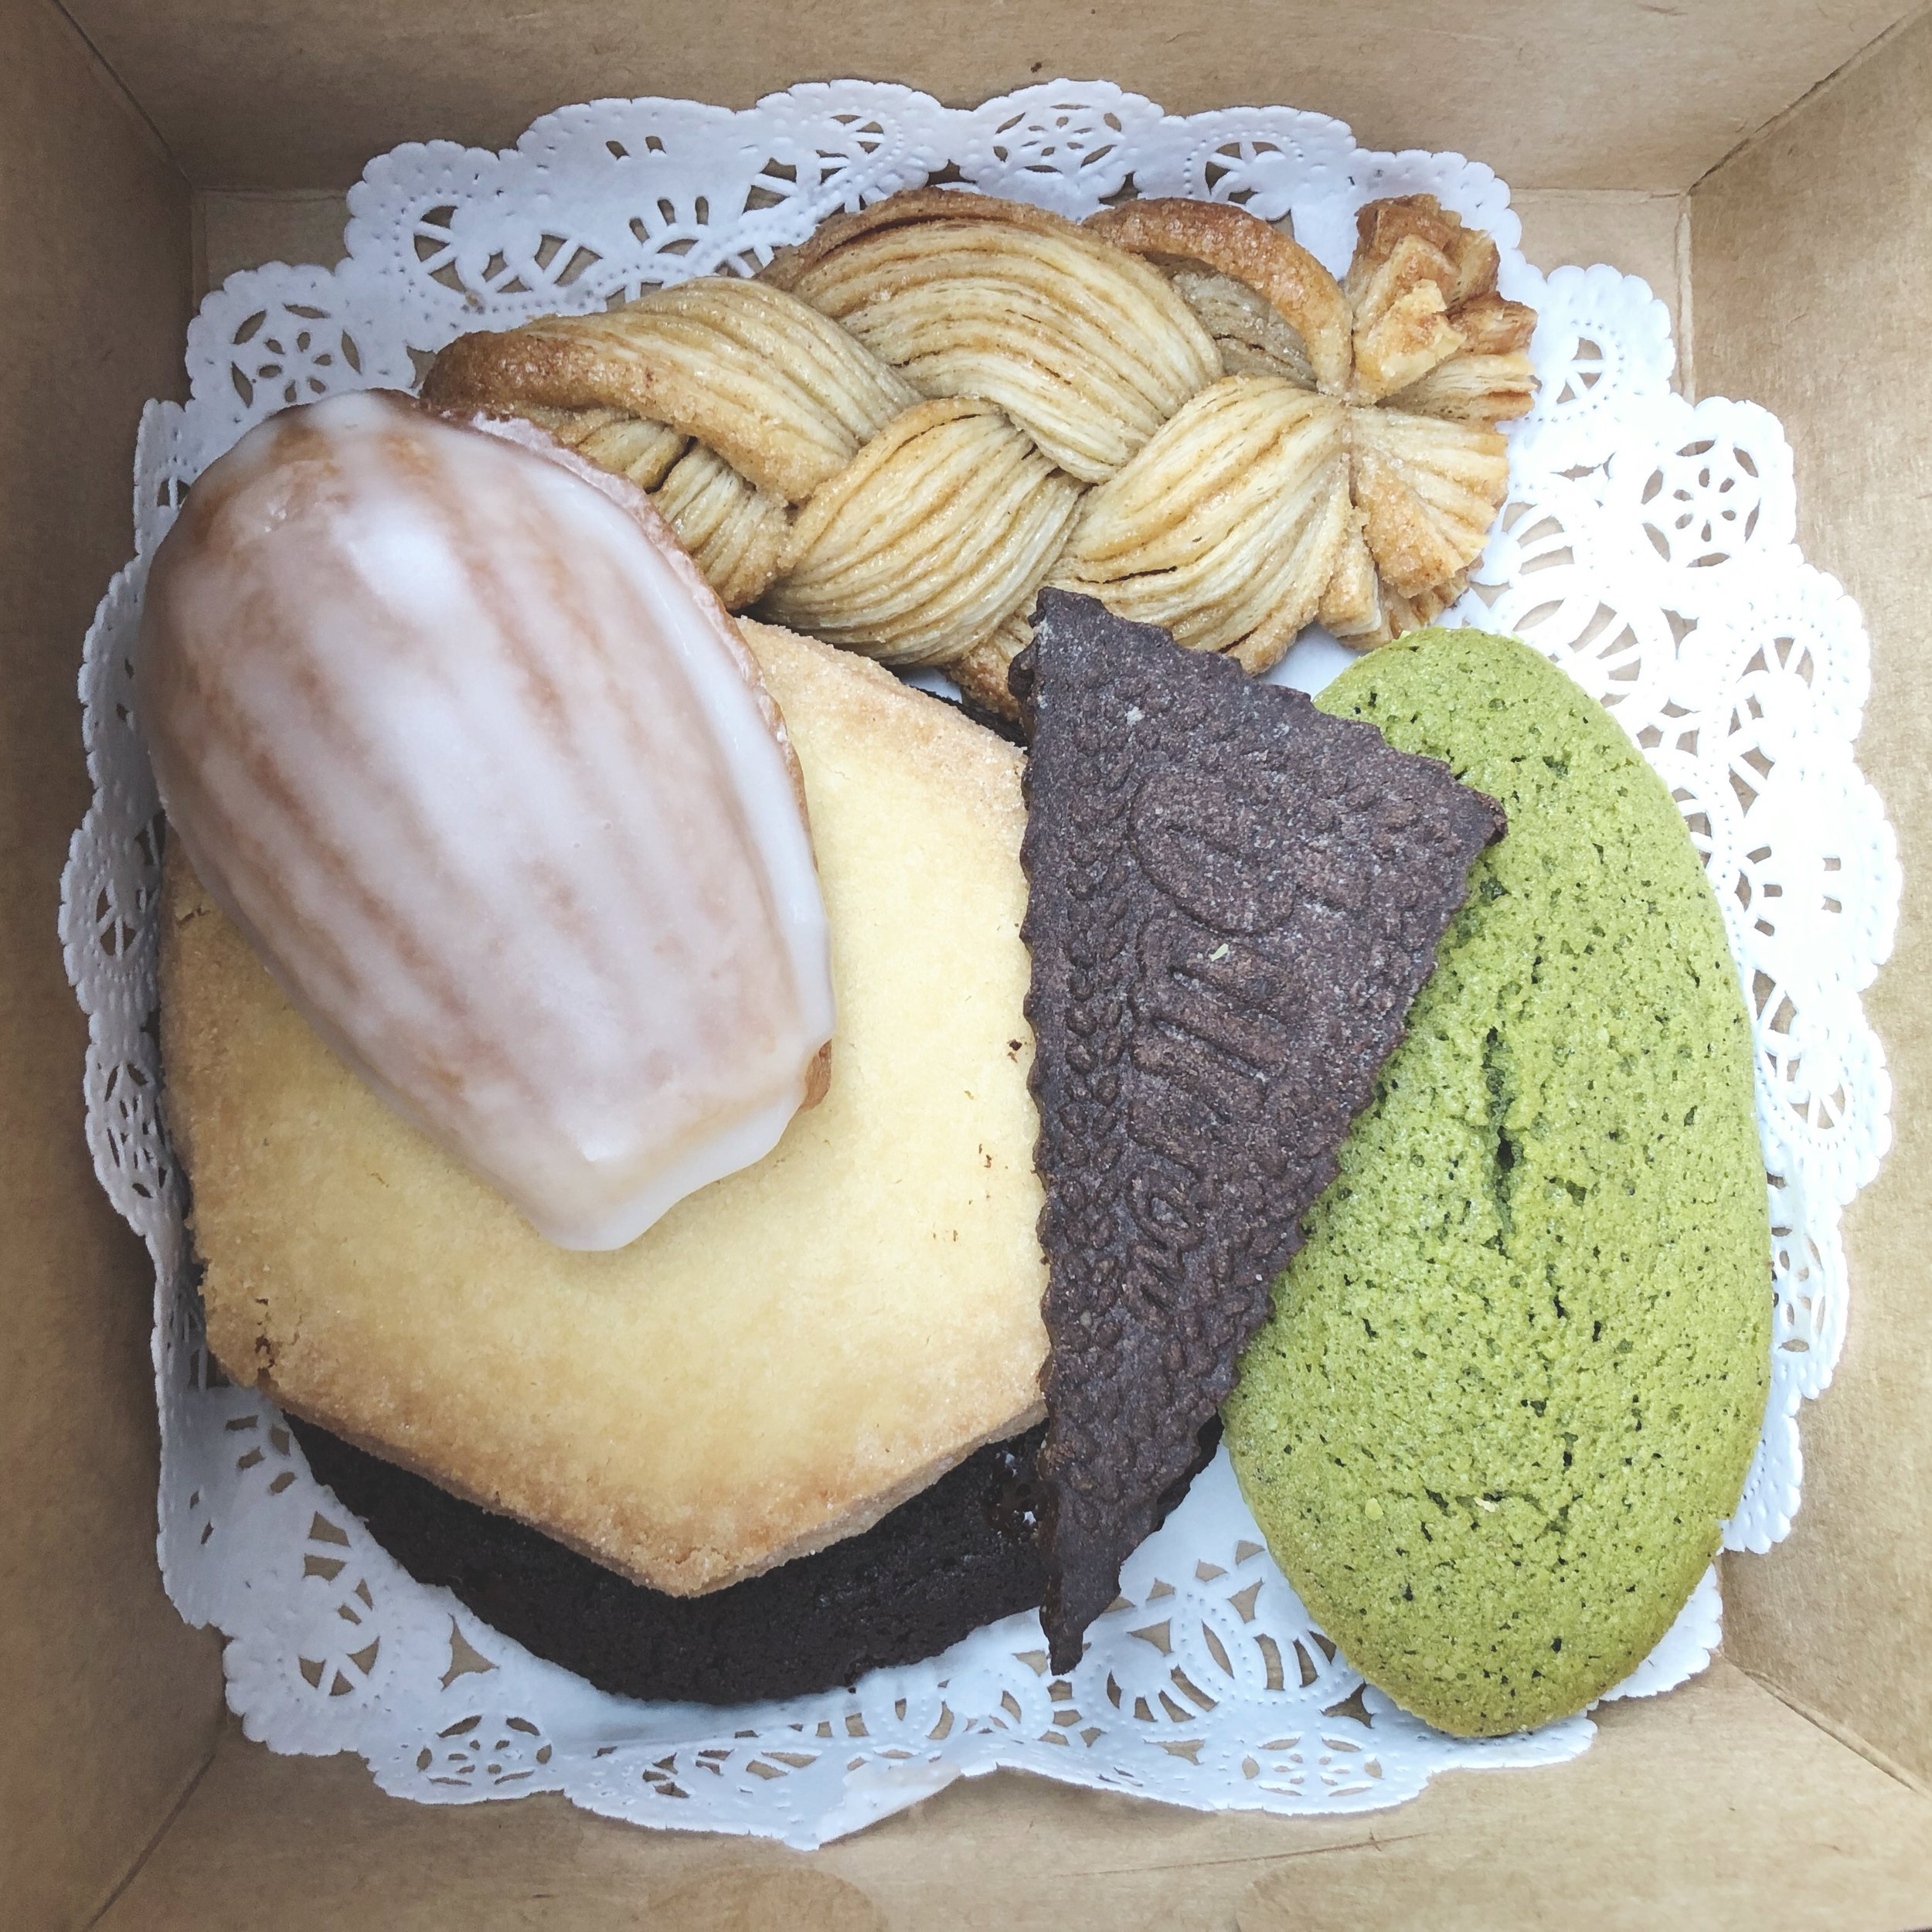 A box of treats from Burrow.